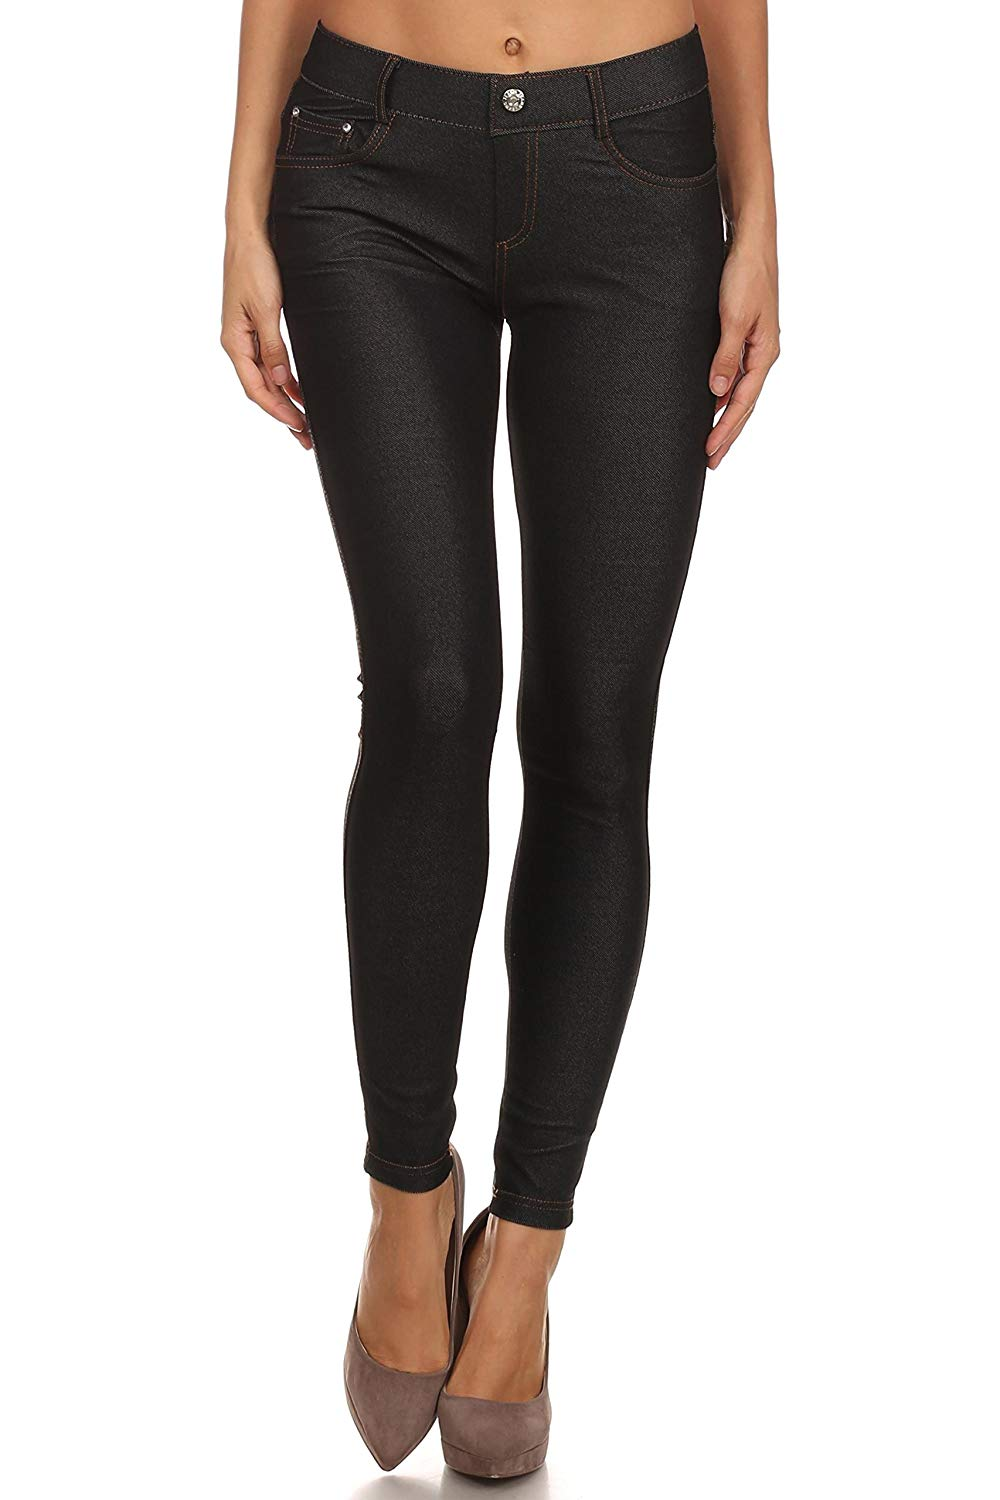 e75d0f92b53 Get Quotations · Simlu Long Jeggings For Women Skinny Stretch Fitted Pull  on Jeggings Pants